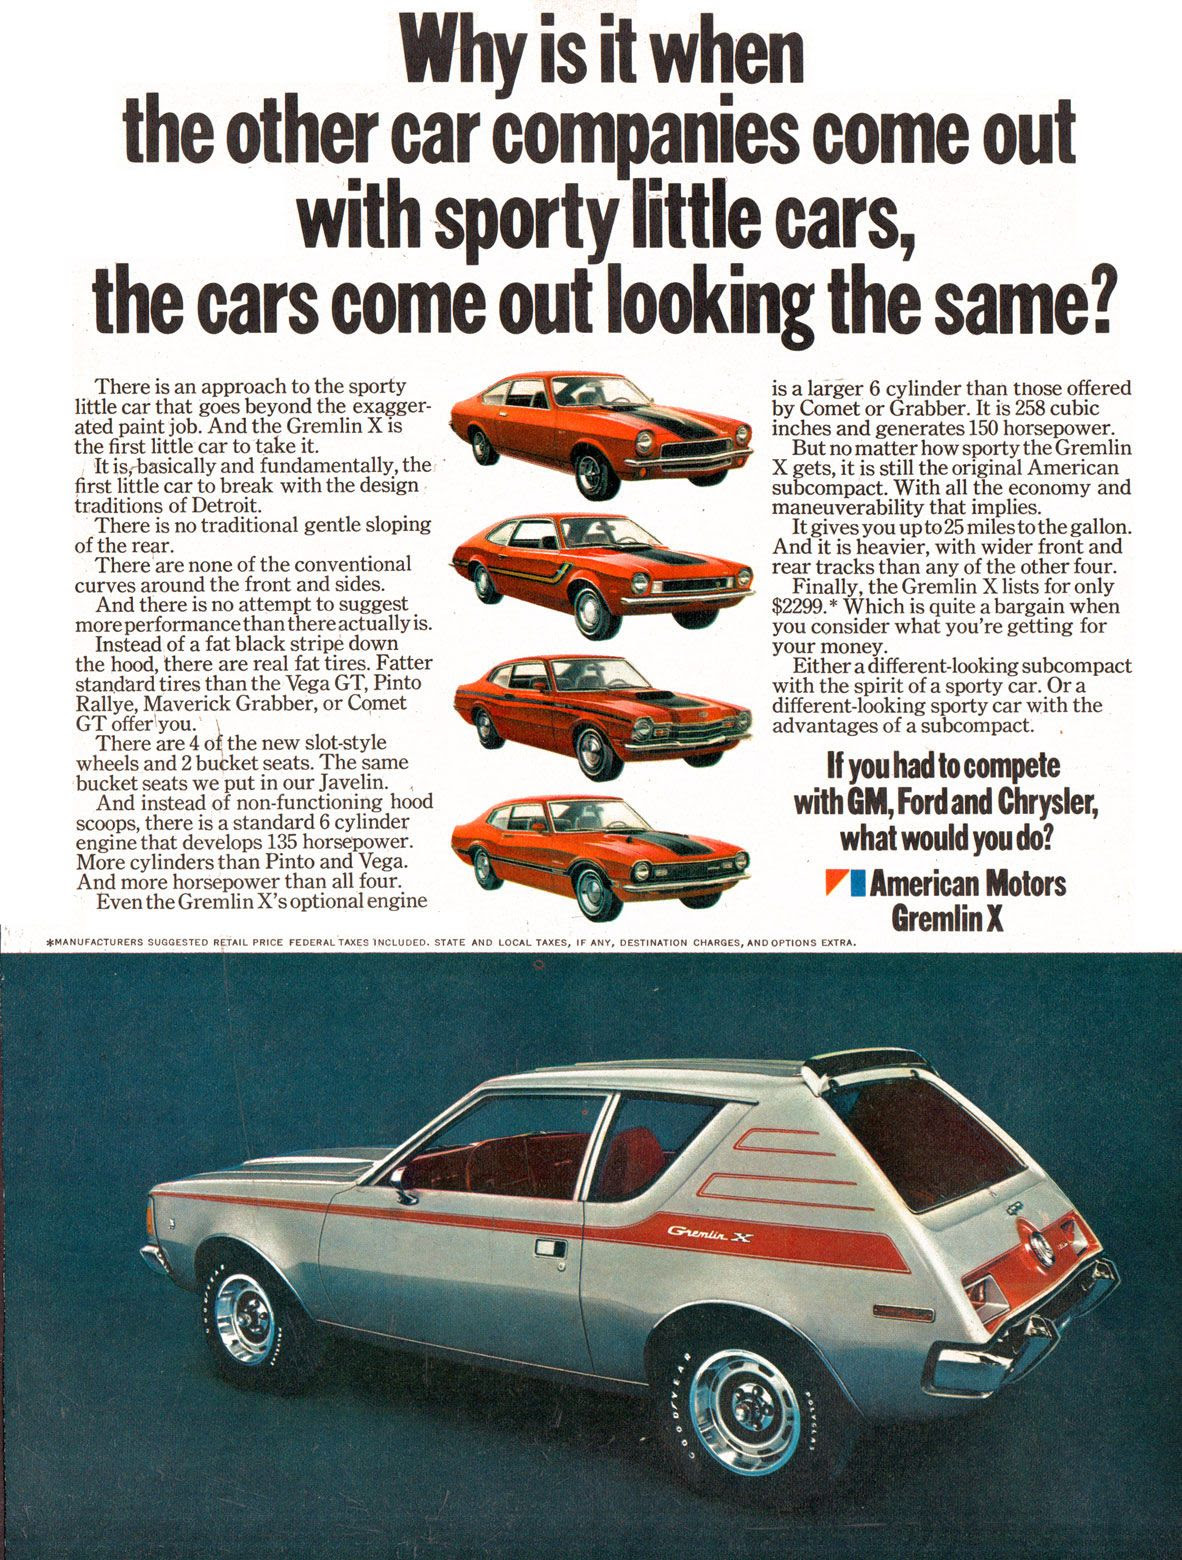 Why is it when the other car companies come out with sporty little cars, the cars come out looking the same? There is an approach to the sporty little car that goes beyond the exagger-ated paint job. And the Gremlin X is the first little car to take it. It is,-basically and fundamentally, the first little car to break with the design traditions of Detroit. There is no traditional gentle sloping of the rear. There are none of the conventional curves around the front and sides. And there is no attempt to suggest more performance than there actually is. Instead of a fat black stripe down the hood, there are real fat tires. Fatter standard tires than the Vega GT, Pinto Rallye, Maverick Grabber, or Comet GT offer you. There are 4 of the new slot-style wheels and 2 bucket seats. The same bucket seats we put in our Javelin. And instead of non-functioning hood scoops, there is a standard 6 cylinder engine that develops 135 horsepower. More cylinders than Pinto and Vega. And more horsepower than all four. Even the Gremlin X's optional engine is a larger 6 cylinder than those offered by Comet or Grabber. It is 258 cubic inches and generates 150 horsepower. But no matter how sporty the Gremlin X gets, it is still the original American subcompact. With all the economy and maneuverability that implies. It gives you up to 25 miles to the gallon. And it is heavier, with wider front and rear tracks than any of the other four. Finally, the Gremlin X lists for only $2299. * Which is quite a bargain when you consider what you're getting for your money. Either a different-looking subcompact with the spirit of a sporty car. Or a different-looking sporty car with the advantages of a subcompact. If you had to compete with GM, Ford and Chrysler, what would you do? The American Motors Gremlin X.